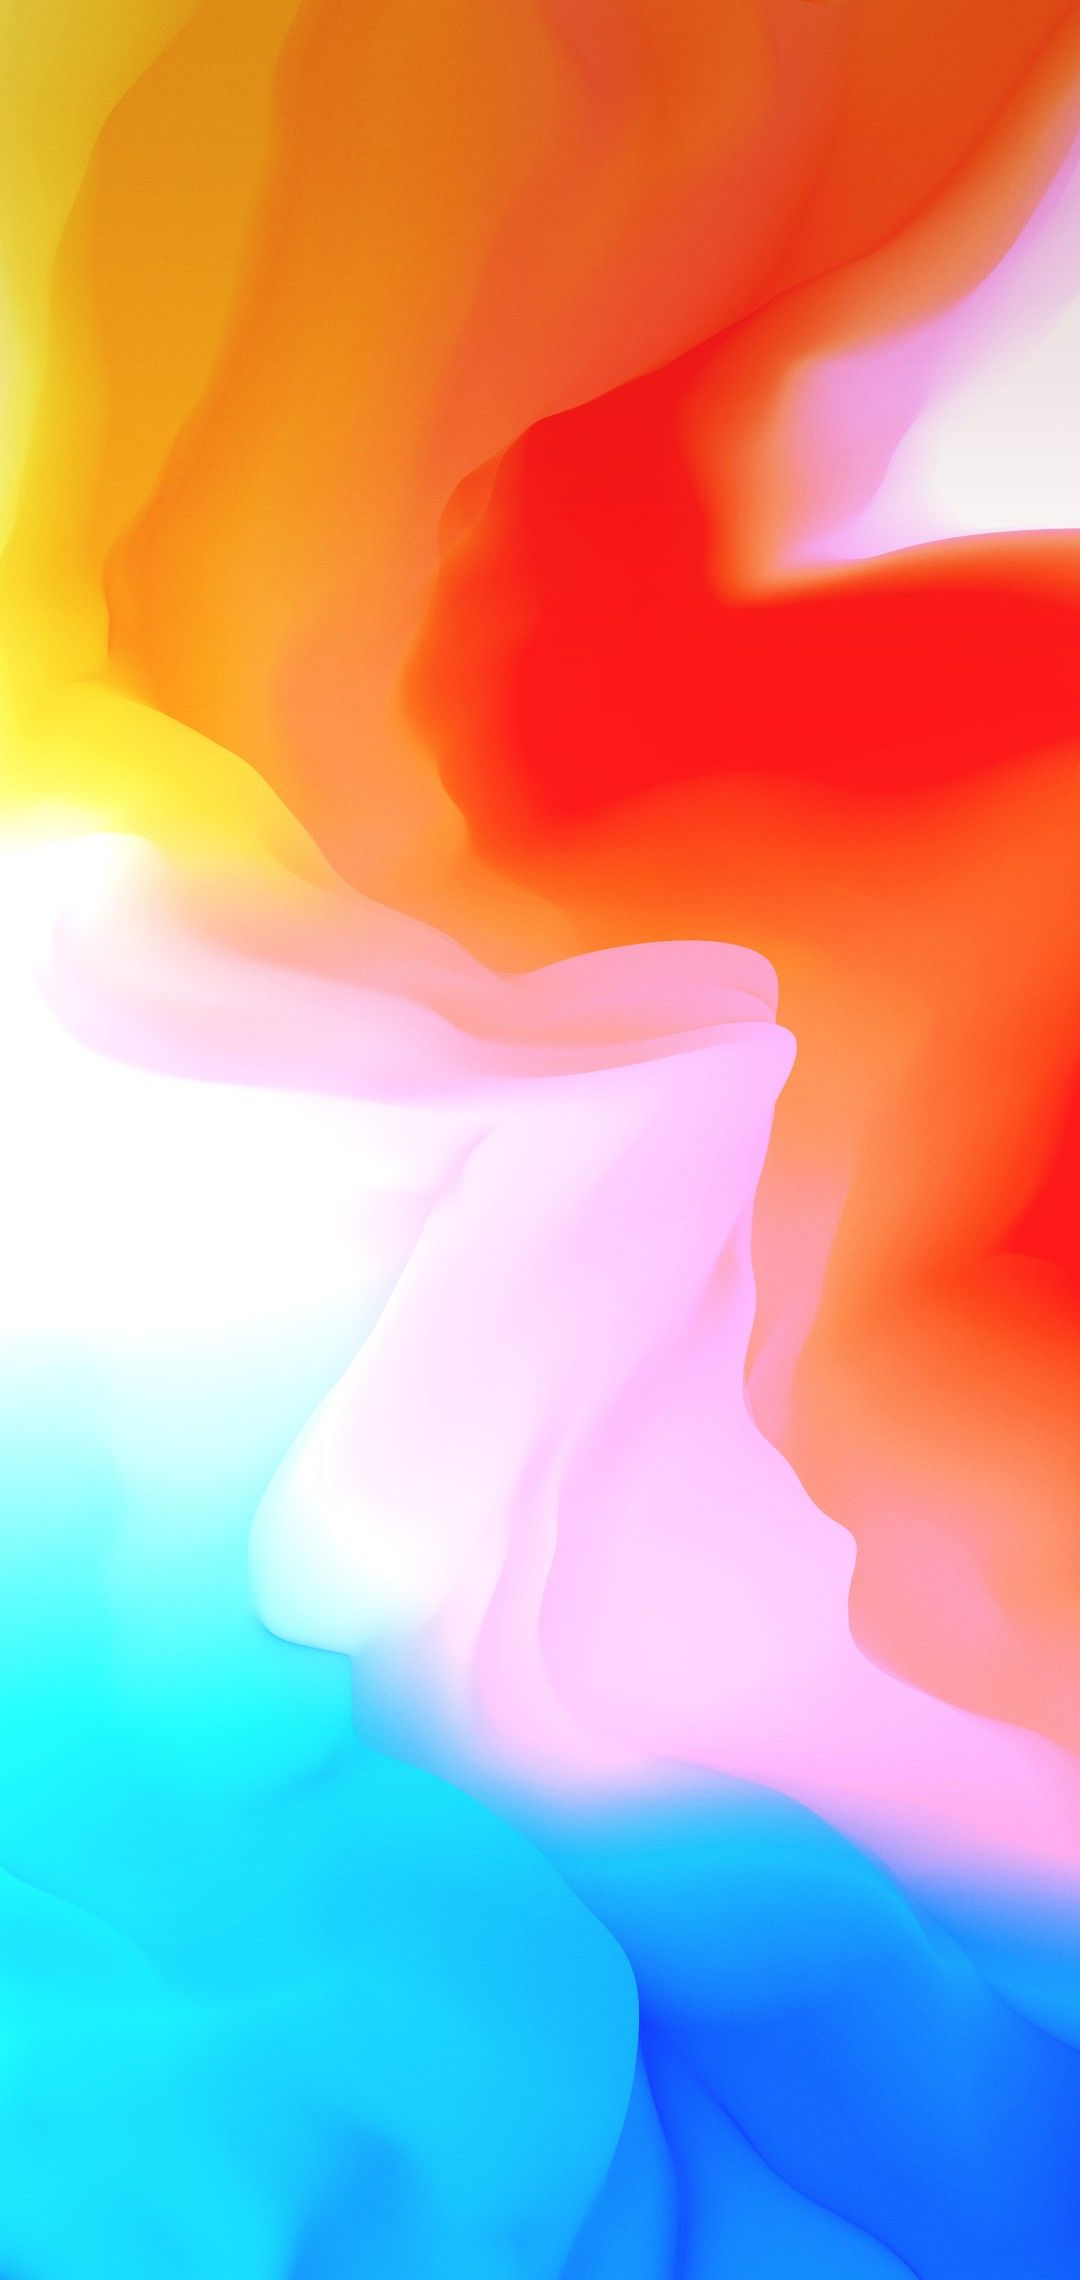 Ios 11 Iphone X Orange Red Pink Blue Clean Simple Abstract Apple Wallpaper Iphone Oneplus Wallpapers Abstract Wallpaper Backgrounds Stock Wallpaper Iphone x wallpaper hd 1080p 5 inch